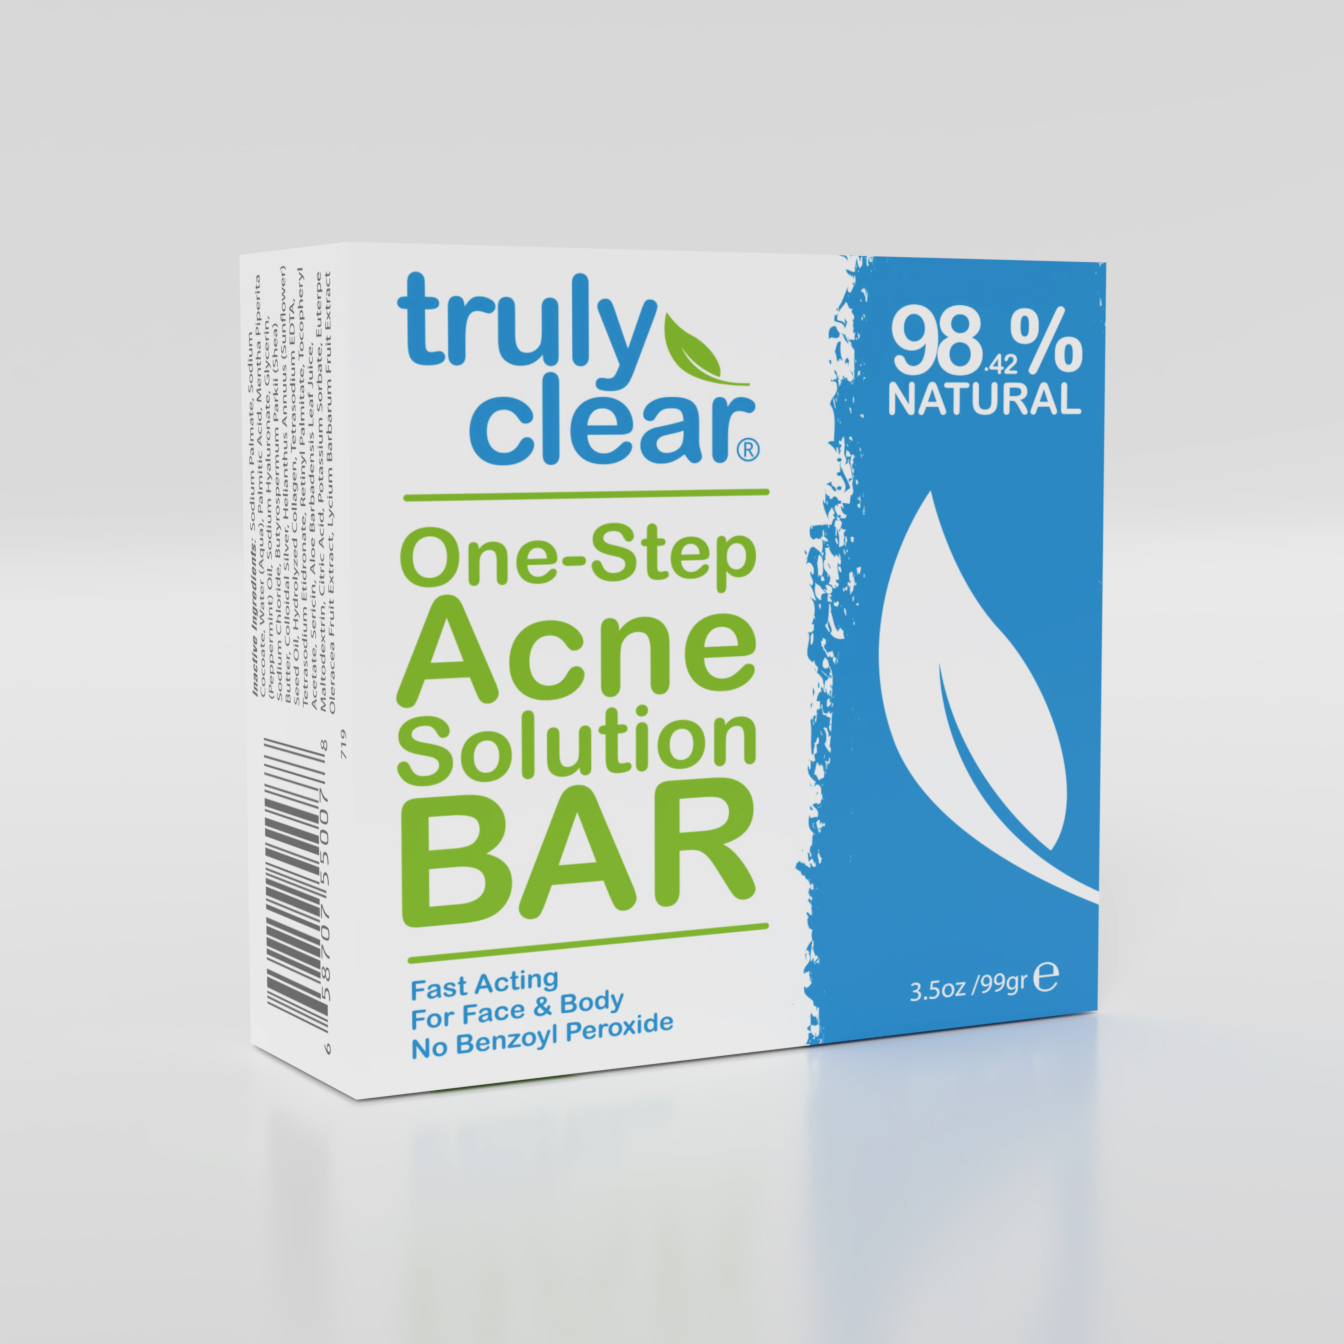 Truly-Clear-box-front4_1573156519.3641